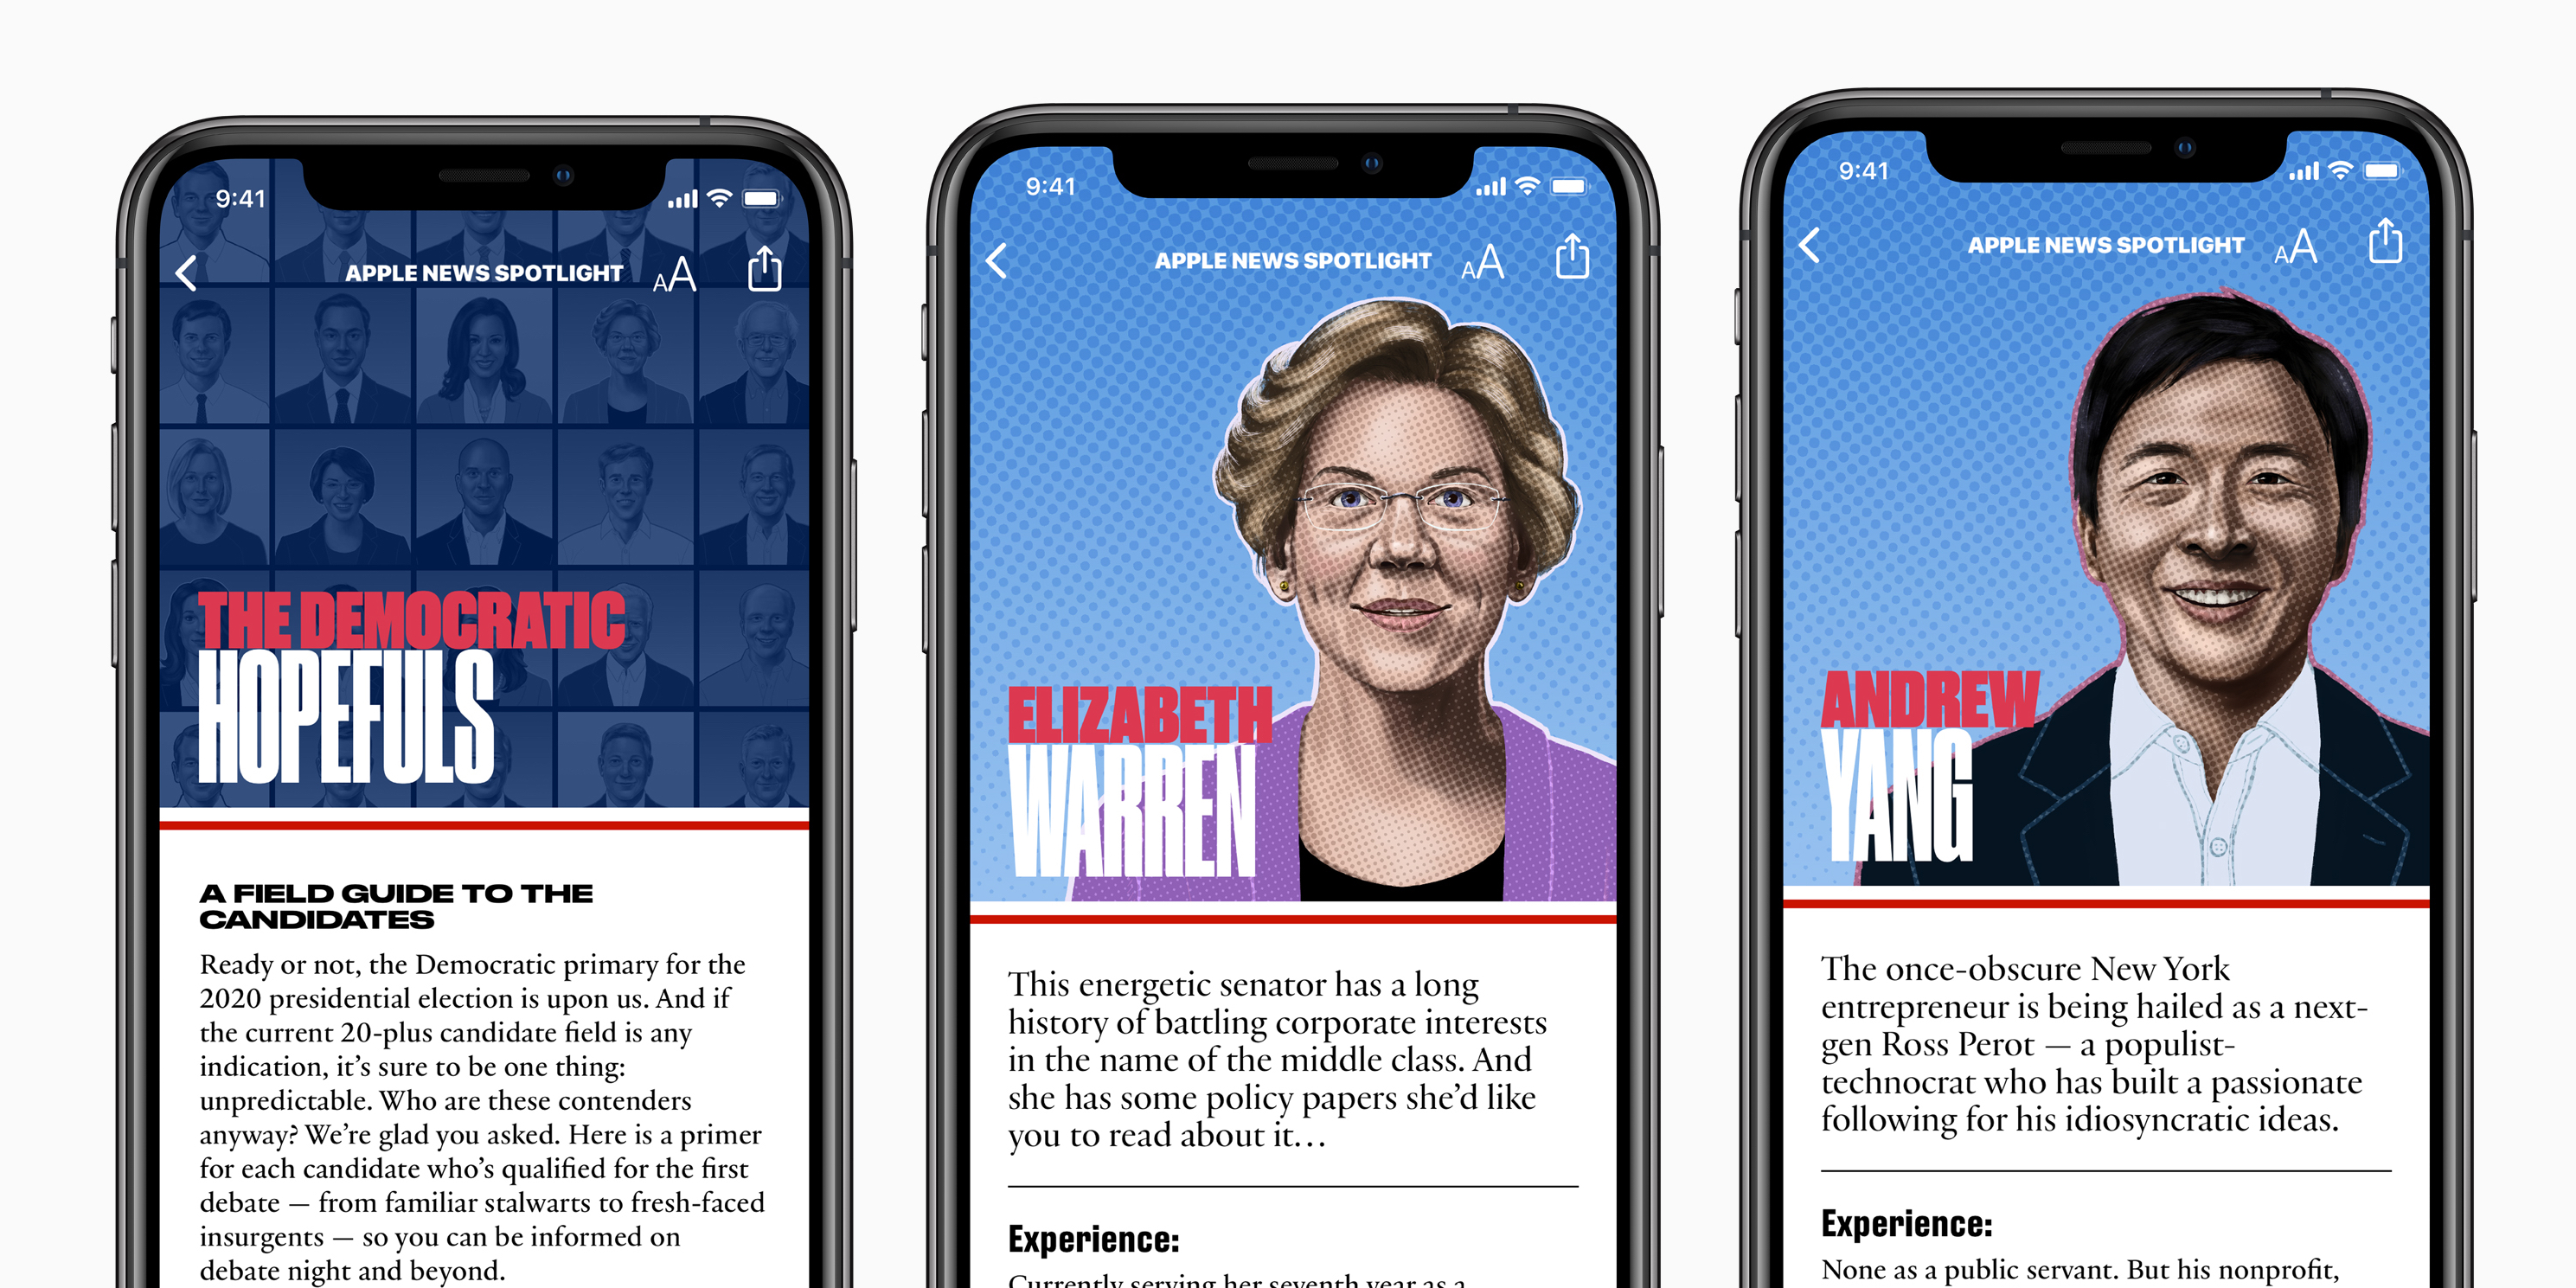 QnA VBage Apple News launches Democratic candidate guide for the 2020 presidential campaign